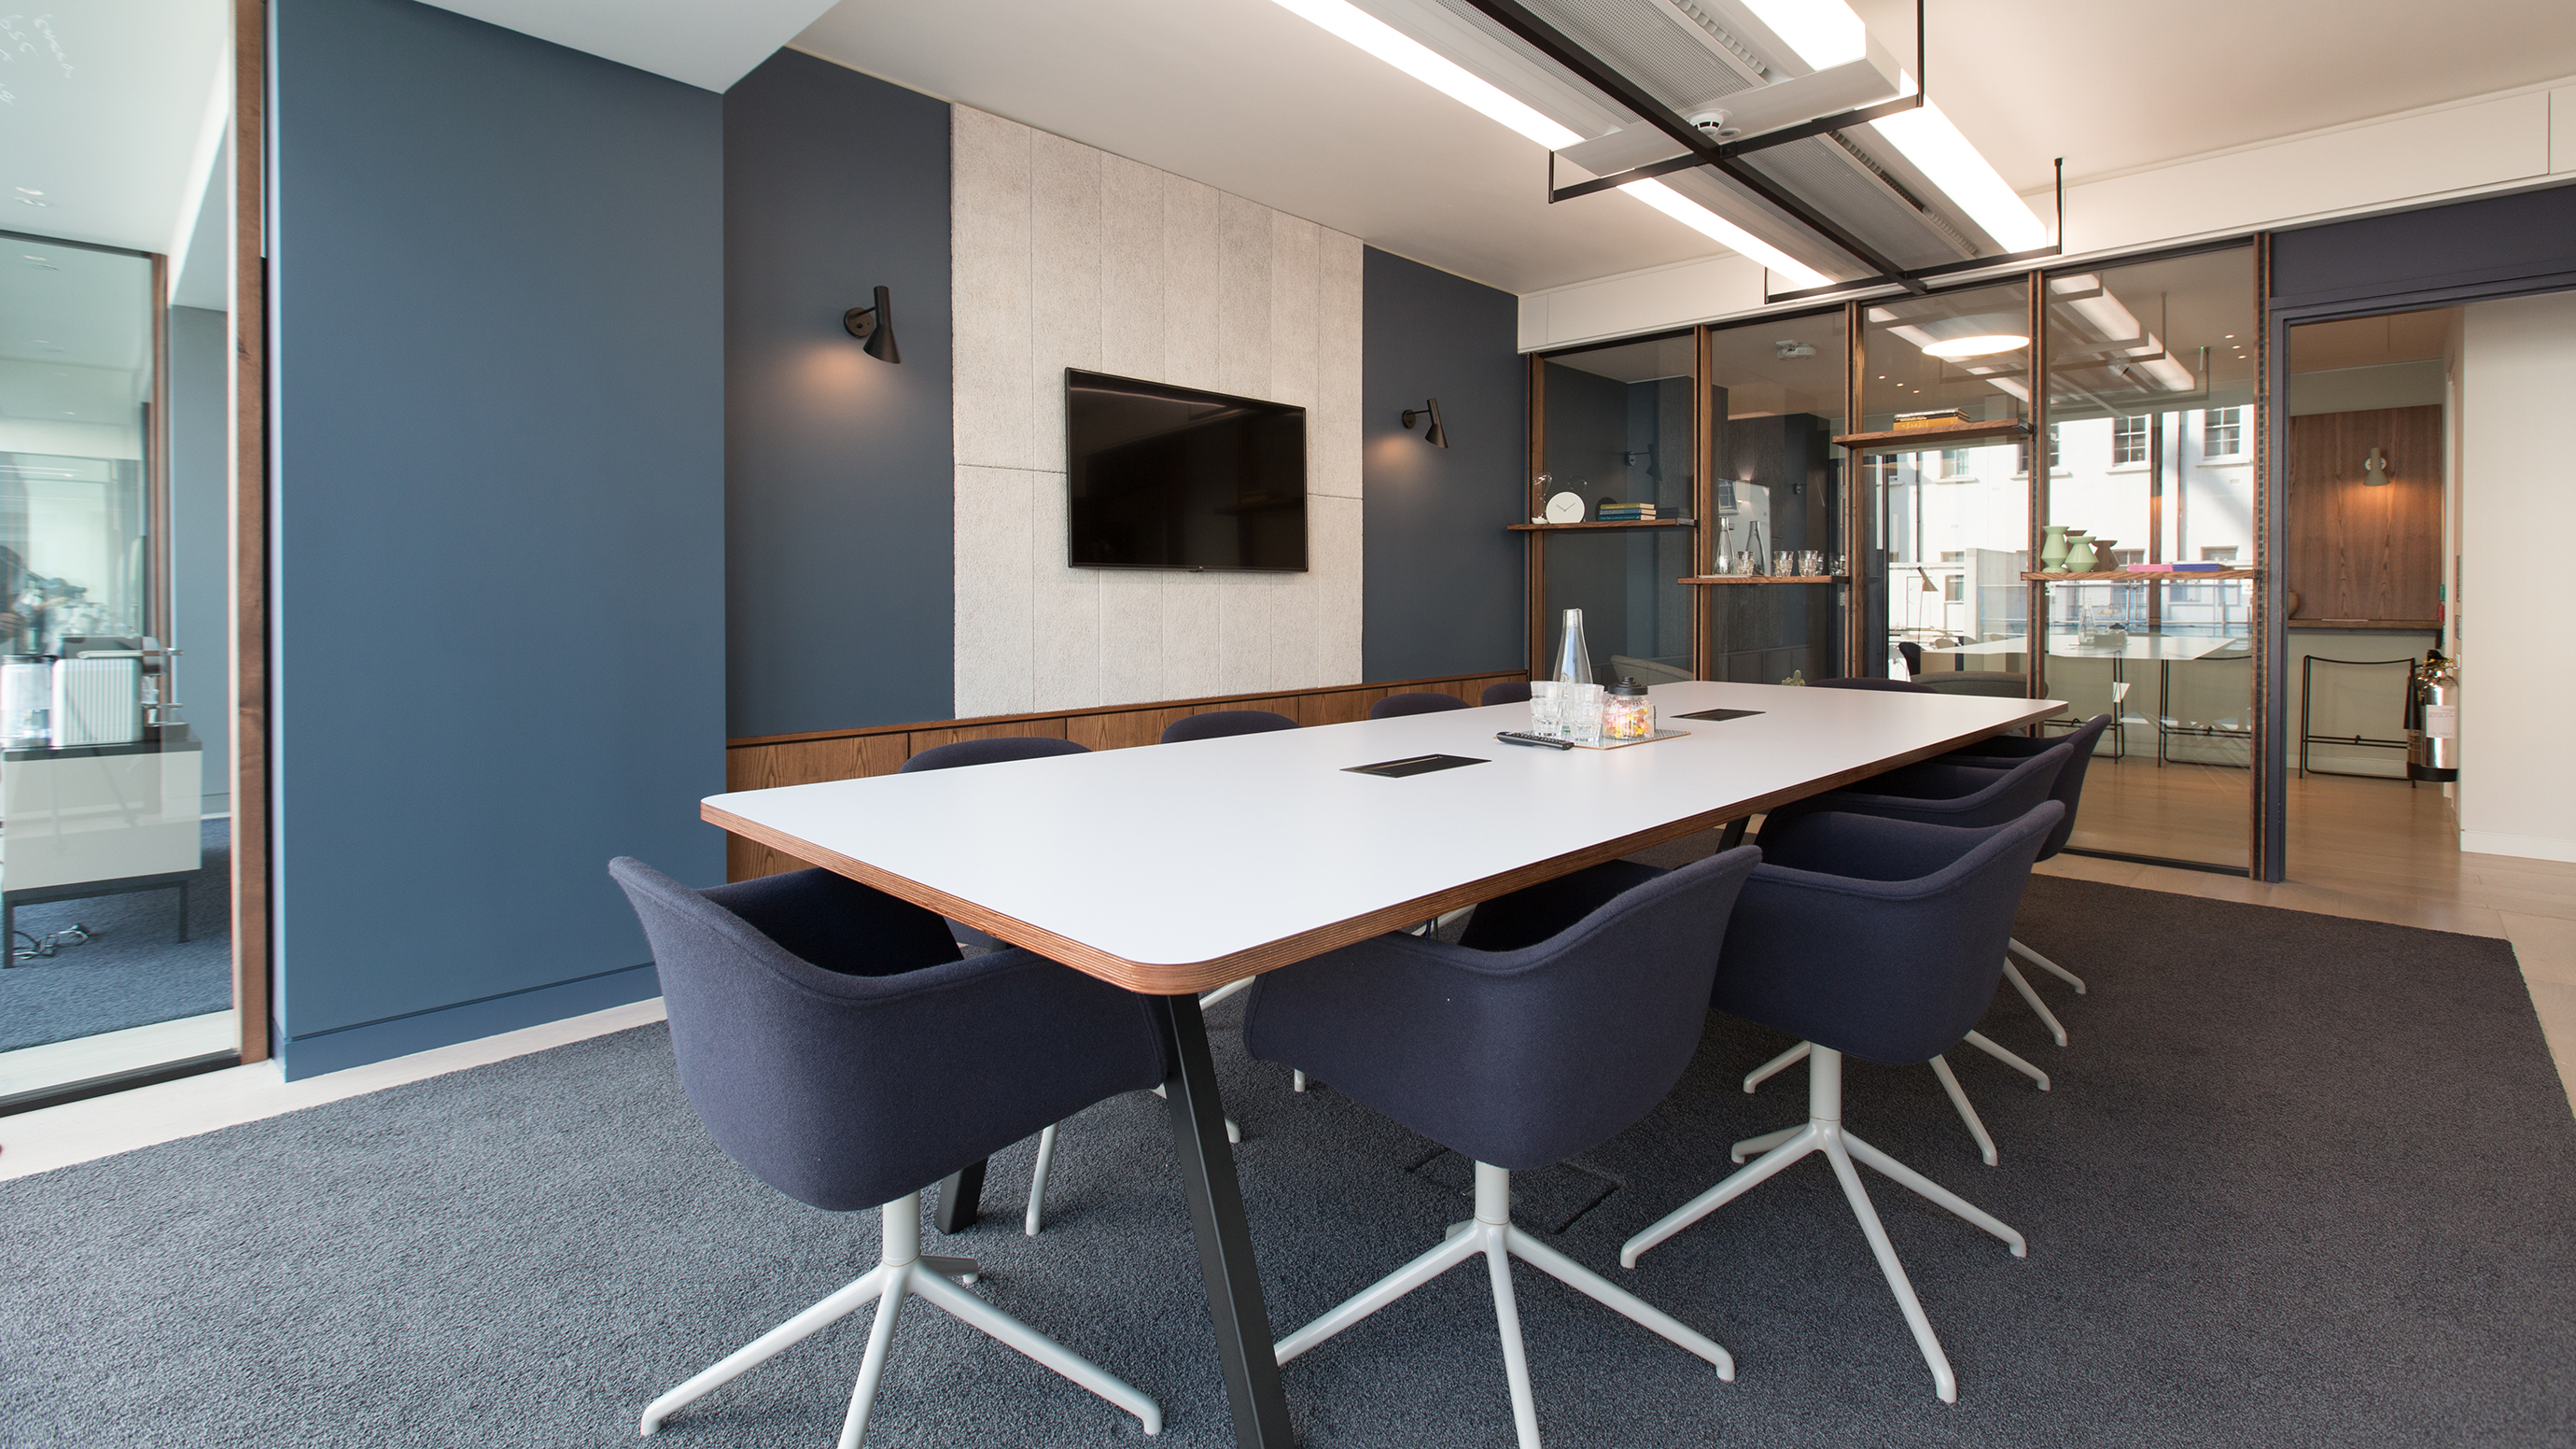 Medium meeting room with white rectangular table and navy chairs and tv screen at TOG building 20 Eastbourne Terrace London